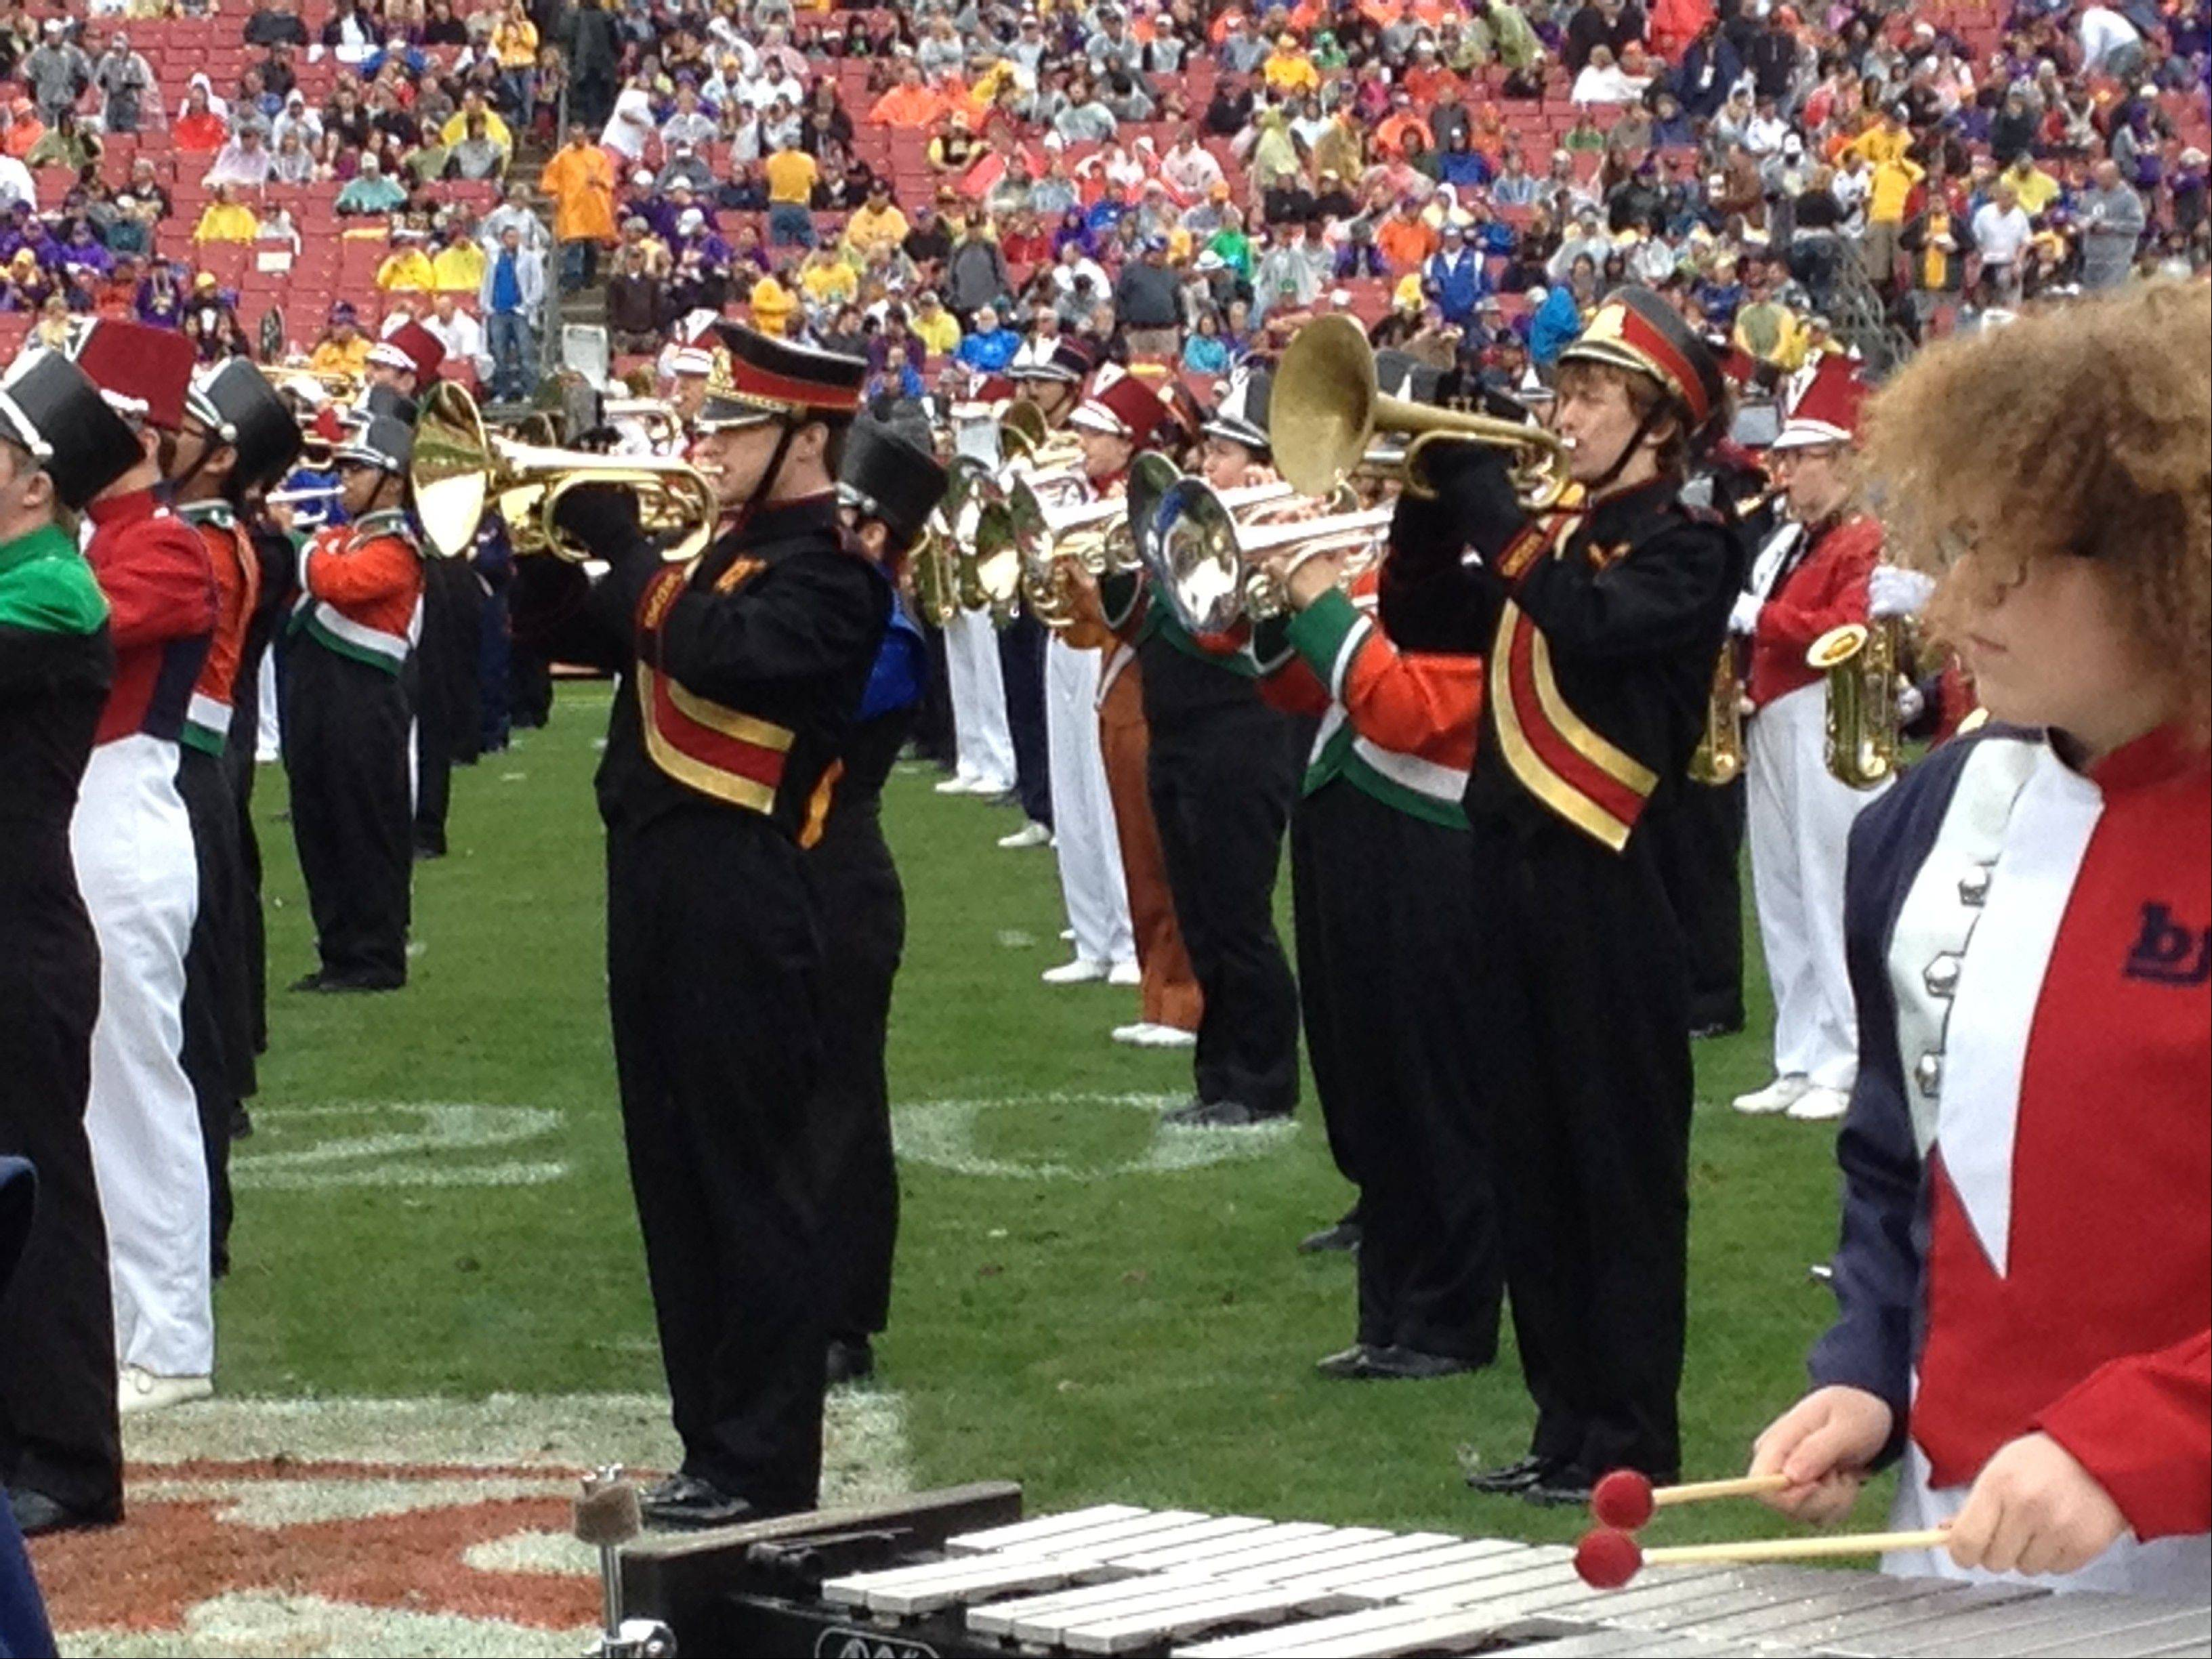 The Schaumburg High School marching band recently returned from performing in Florida.